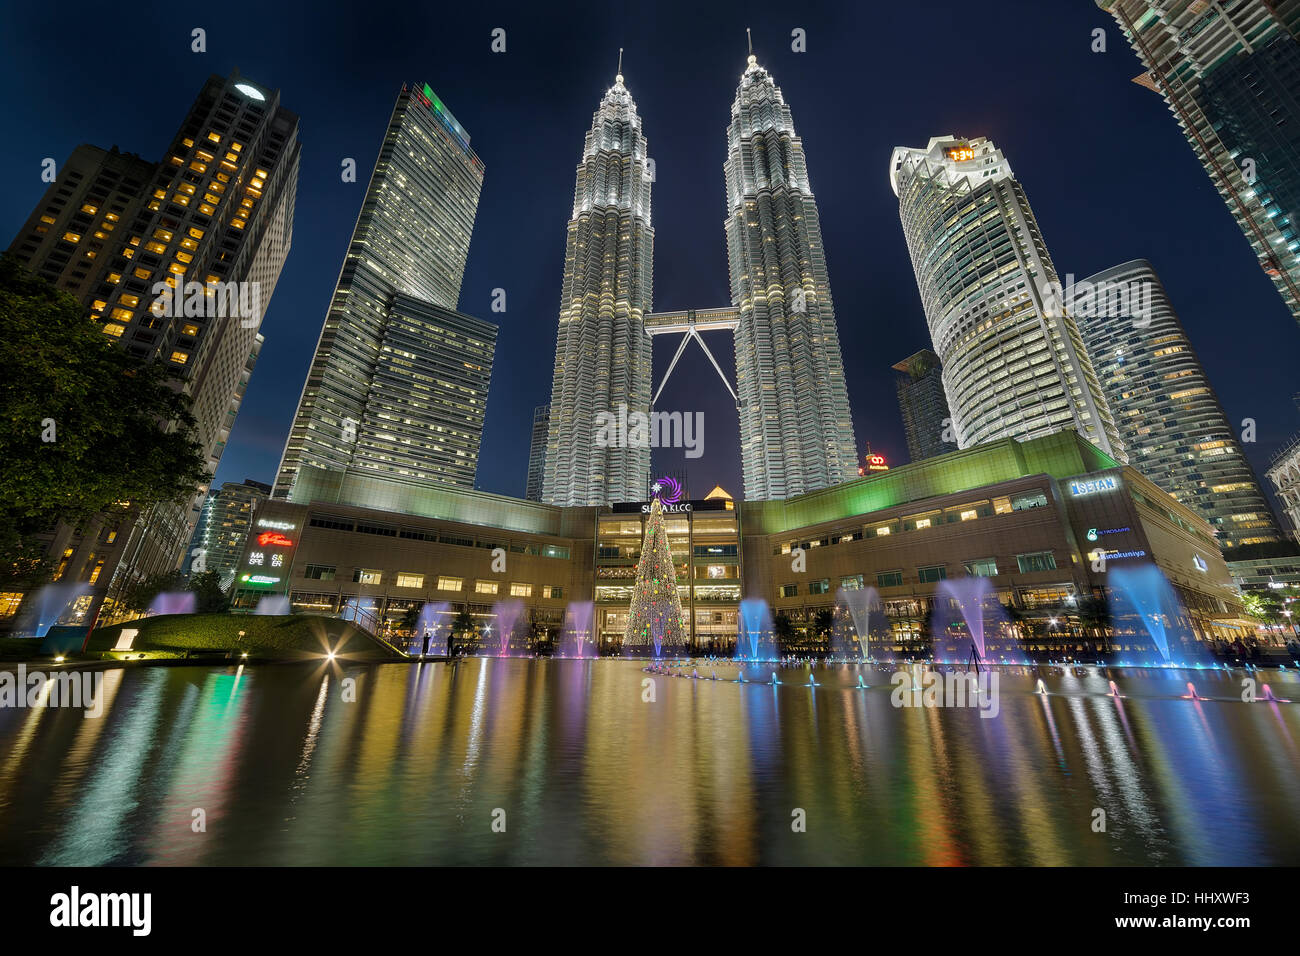 Christmas decoration 2016 at KLCC by Lake Symphony Water Fountain Show at Dusk Stock Photo